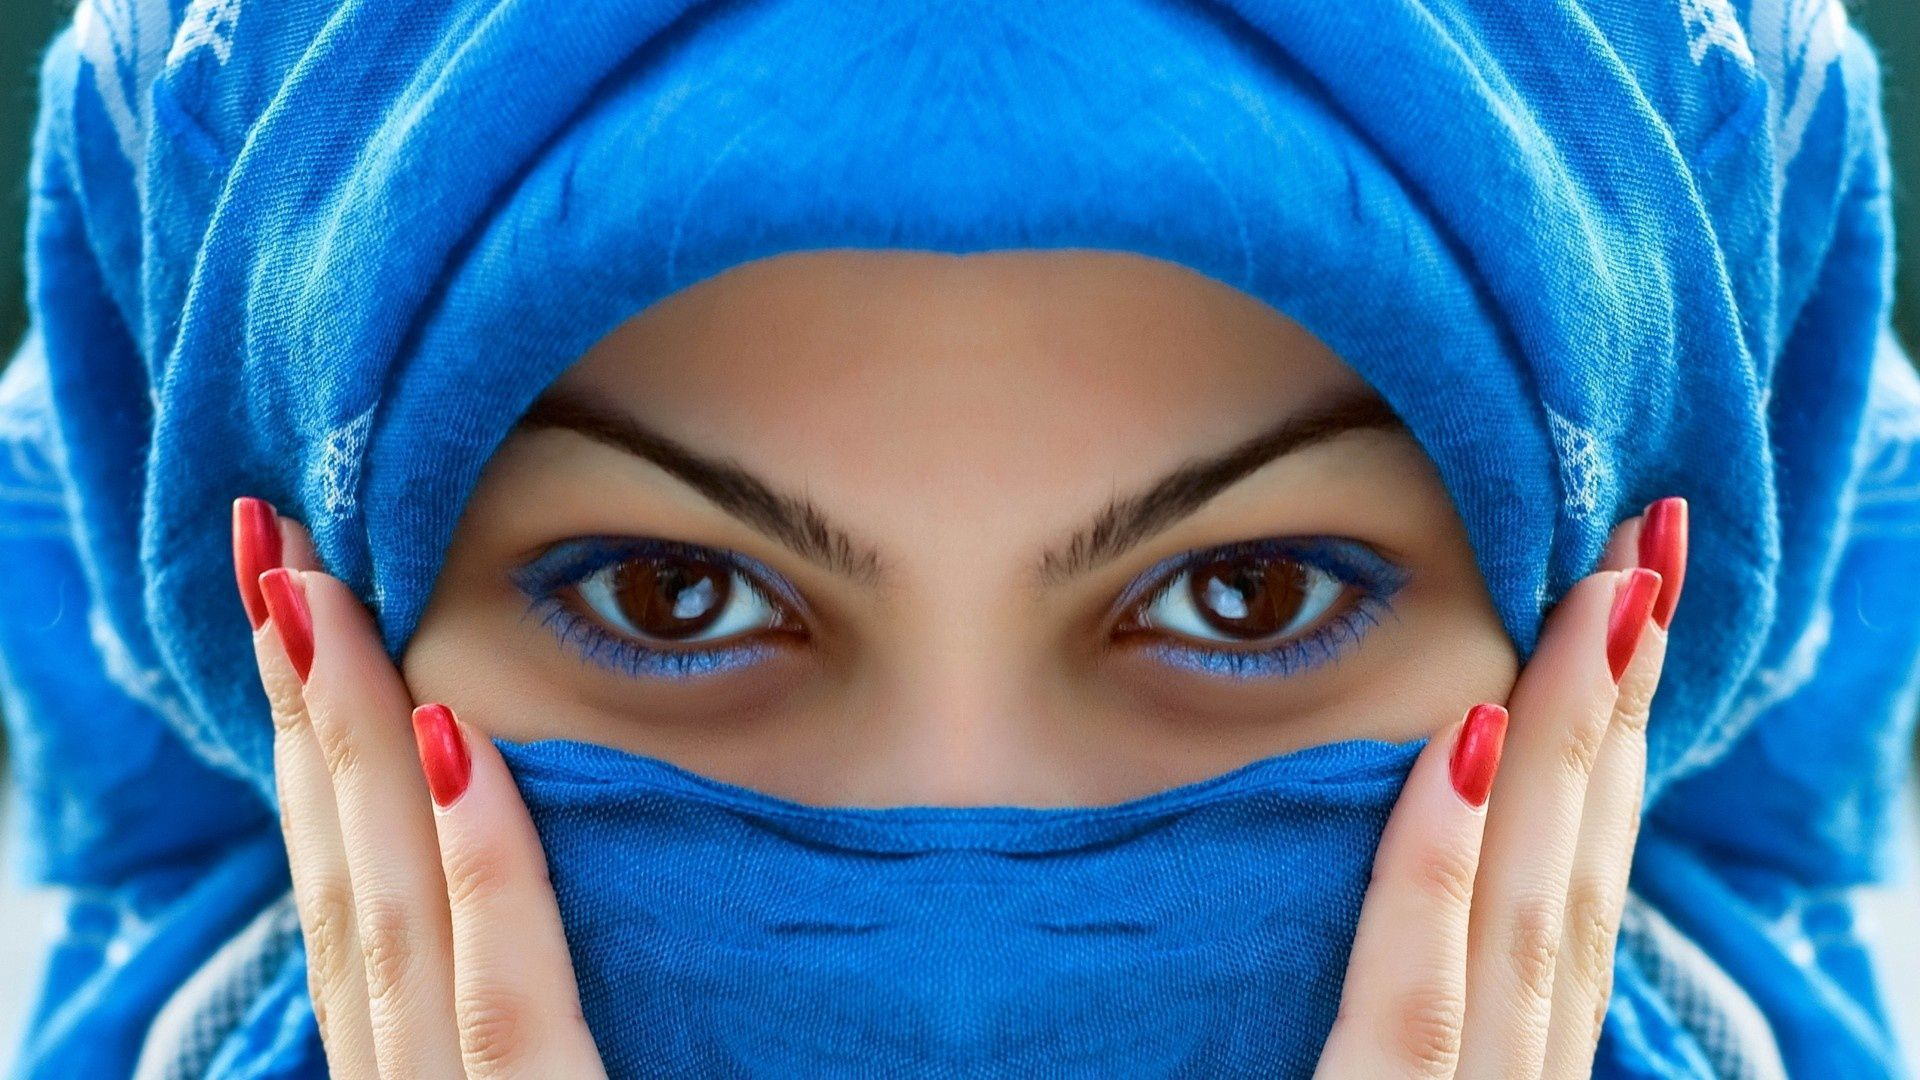 Arab Girl Awesome Pictures